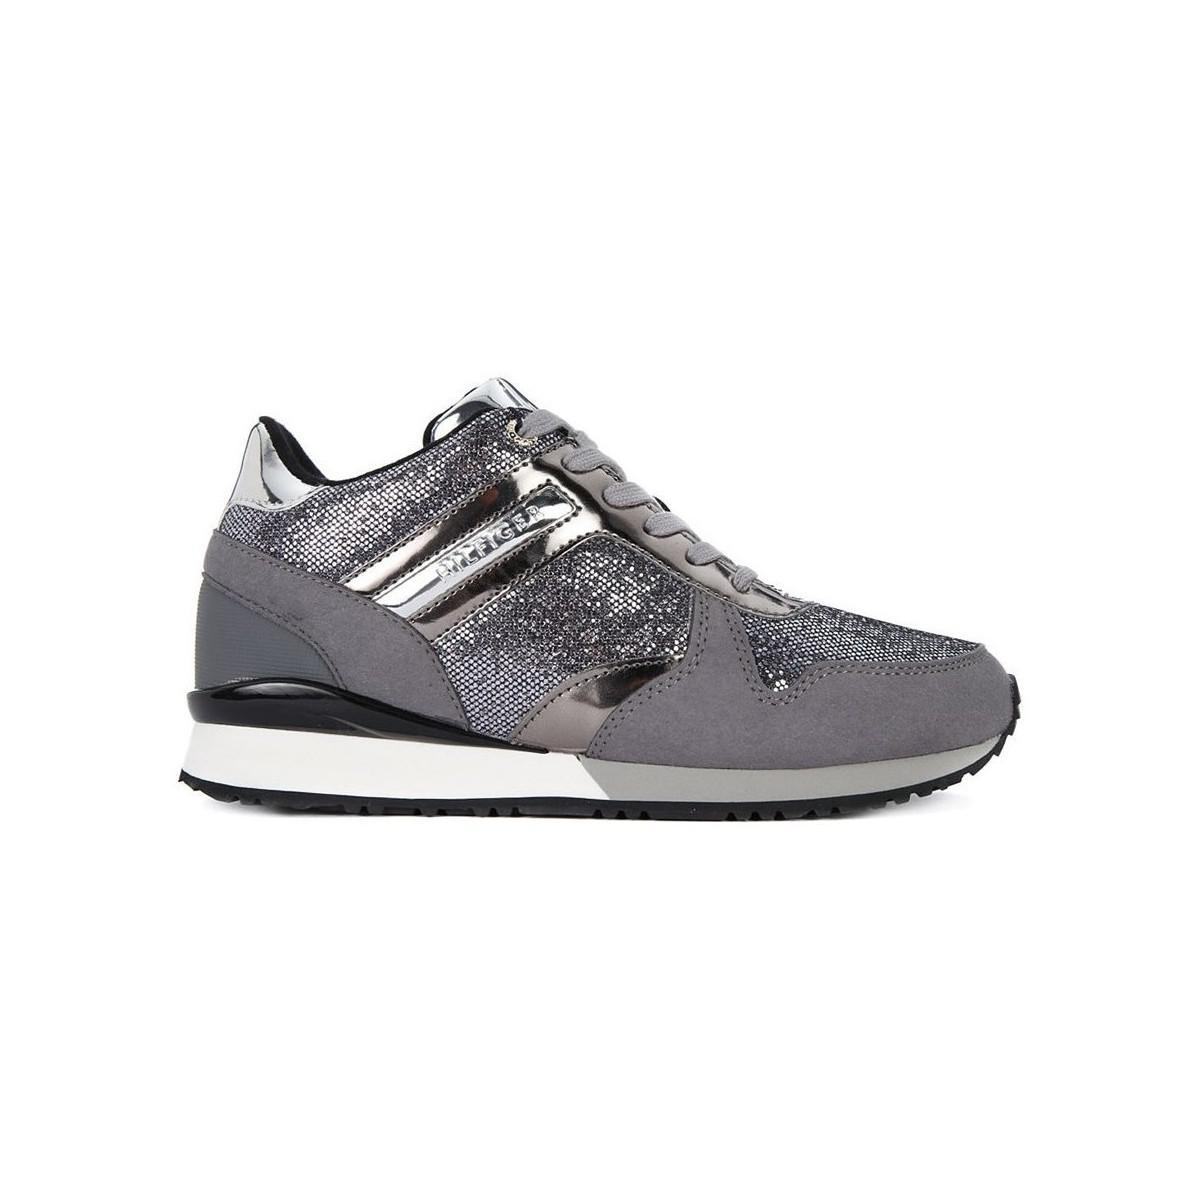 eb27d8233c3 Tommy Hilfiger Fw0fw02763 Women s Shoes (trainers) In Grey in Gray ...